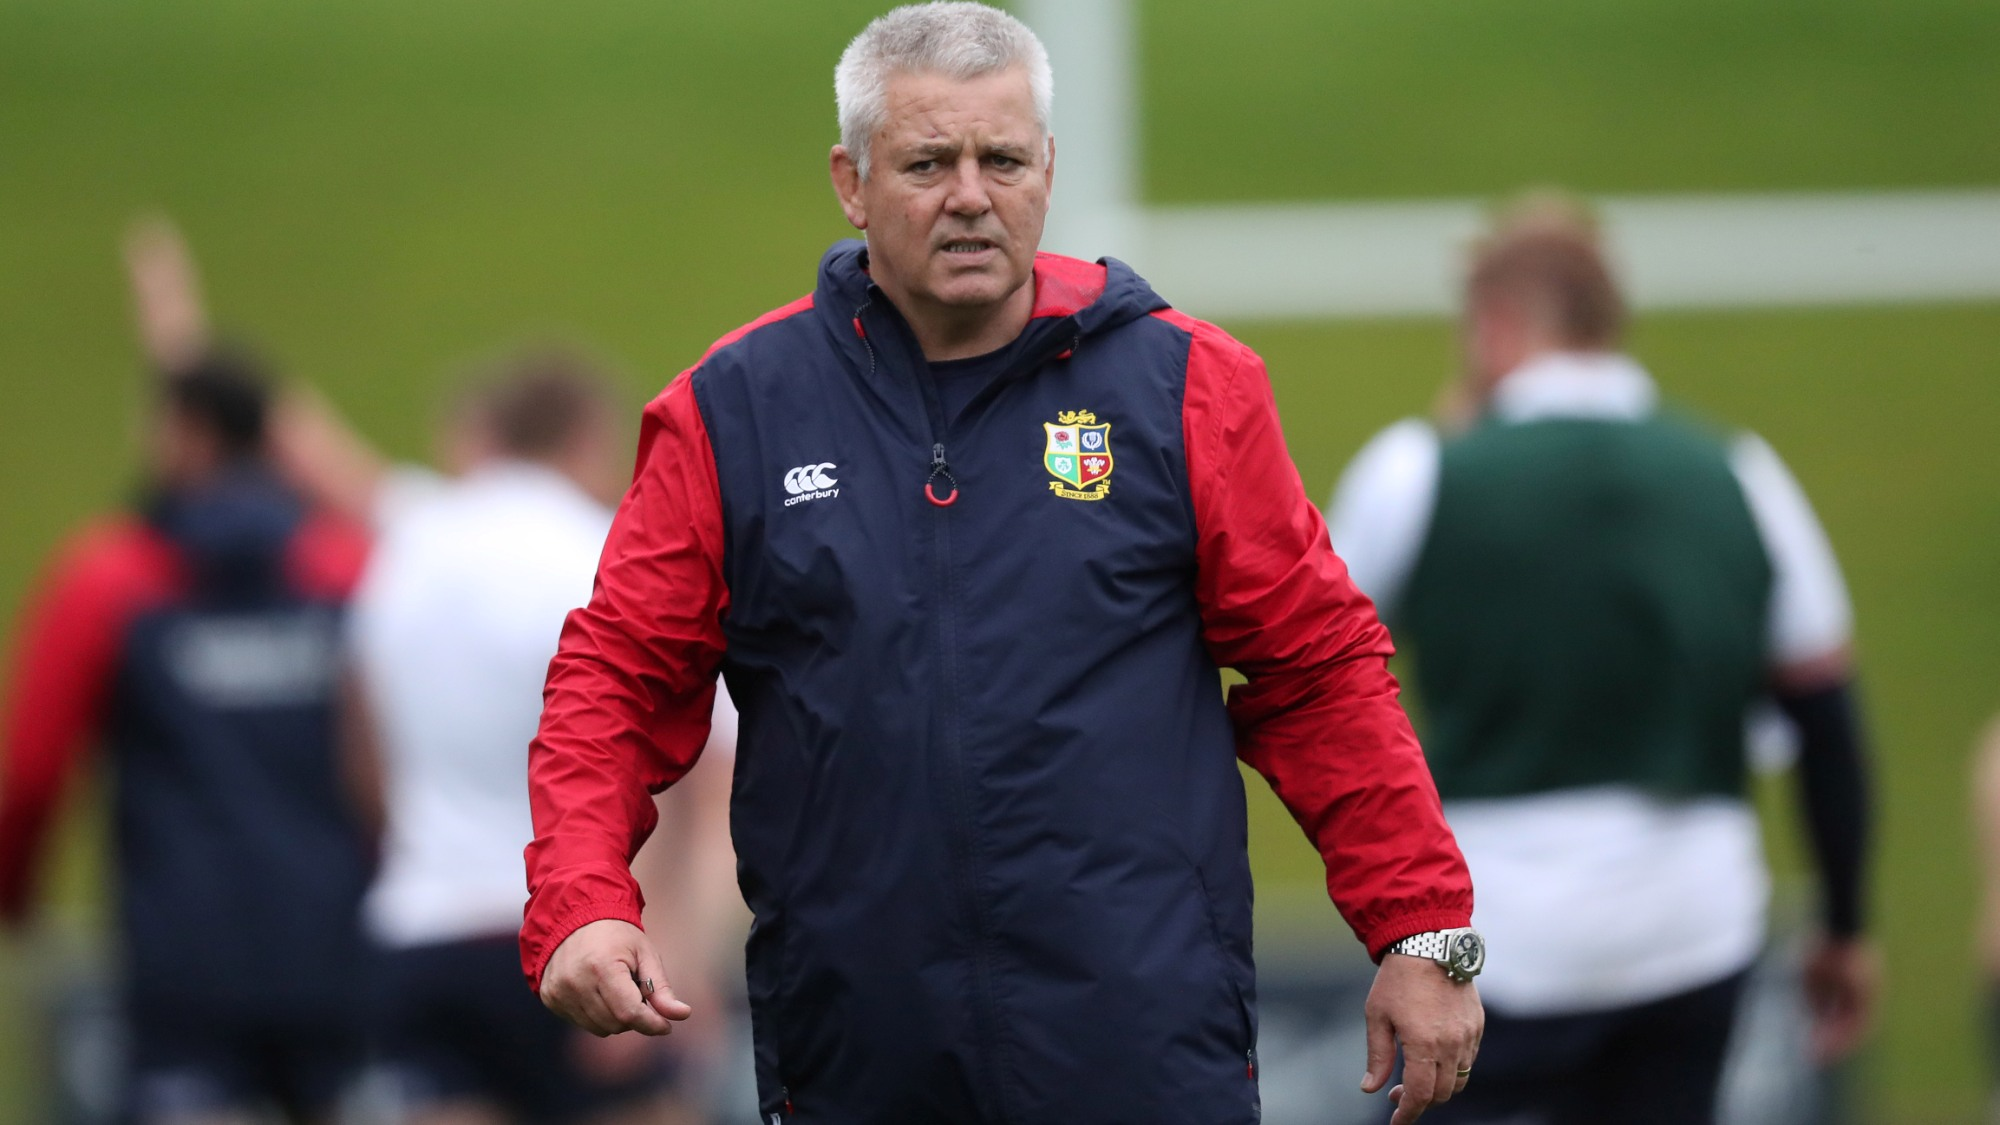 LIVE: British & Irish Lions Second Test Team Announcement